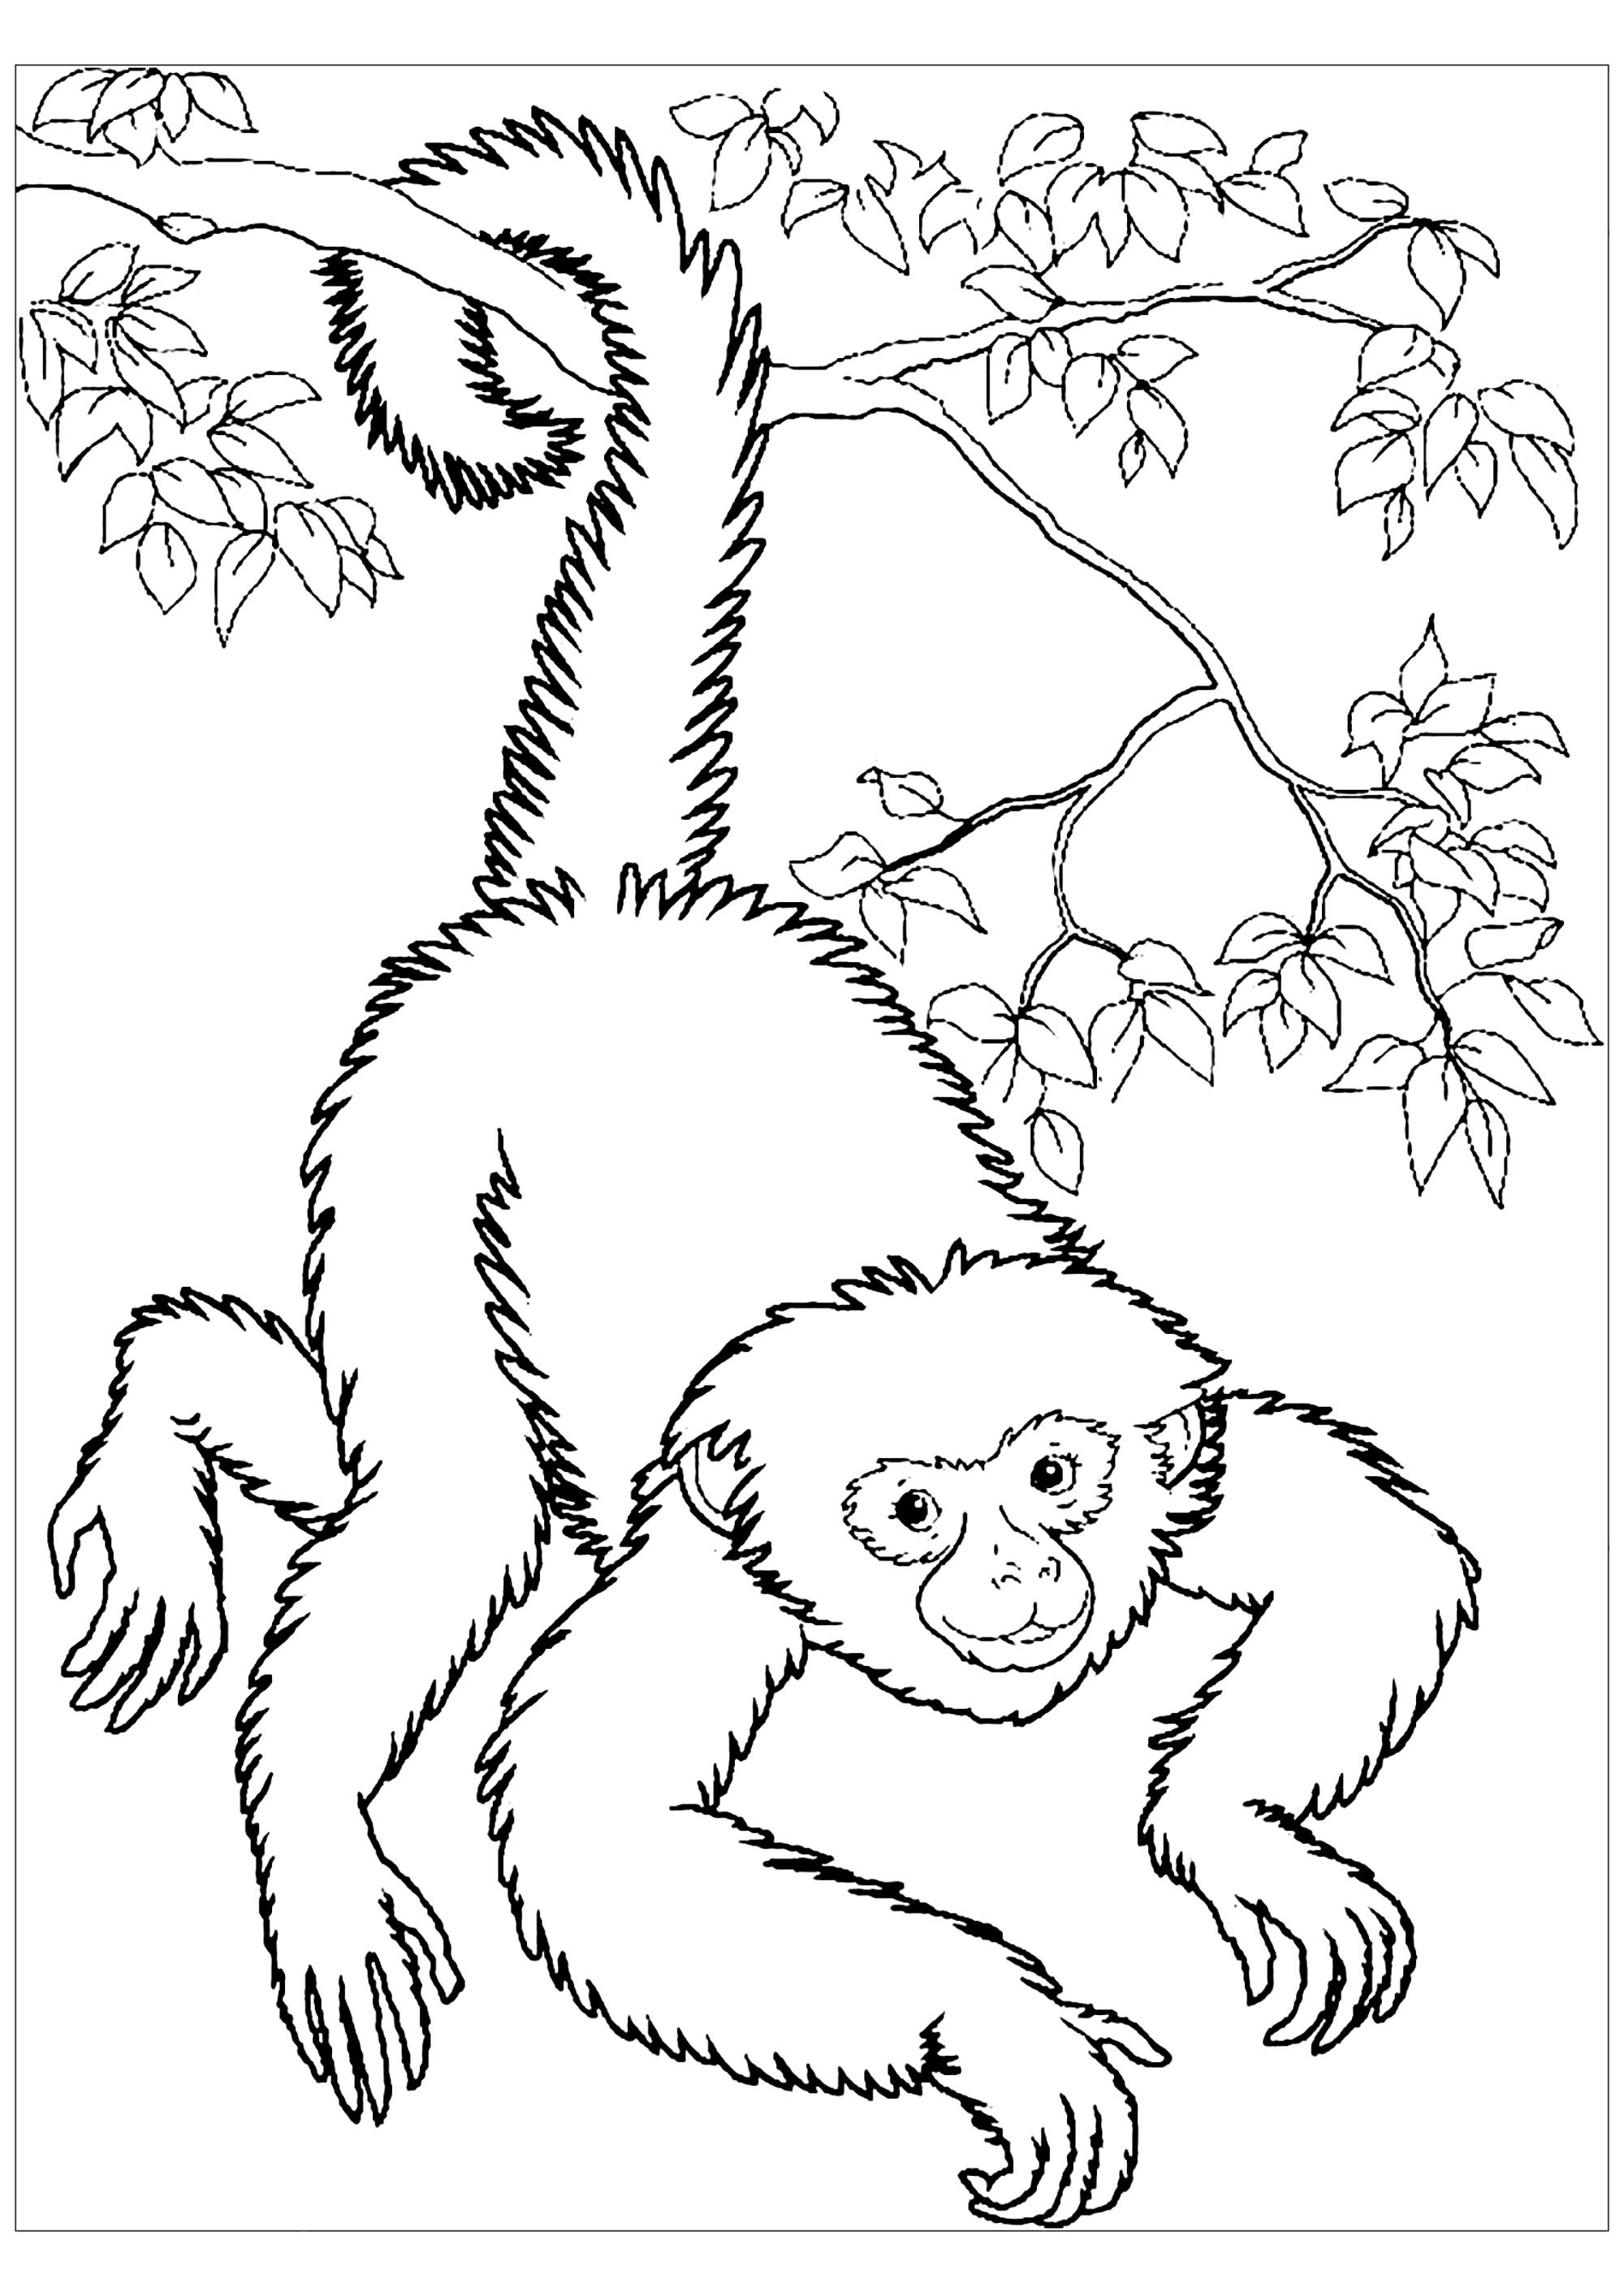 colouring pictures of monkeys monkeys free to color for kids monkeys kids coloring pages colouring of pictures monkeys